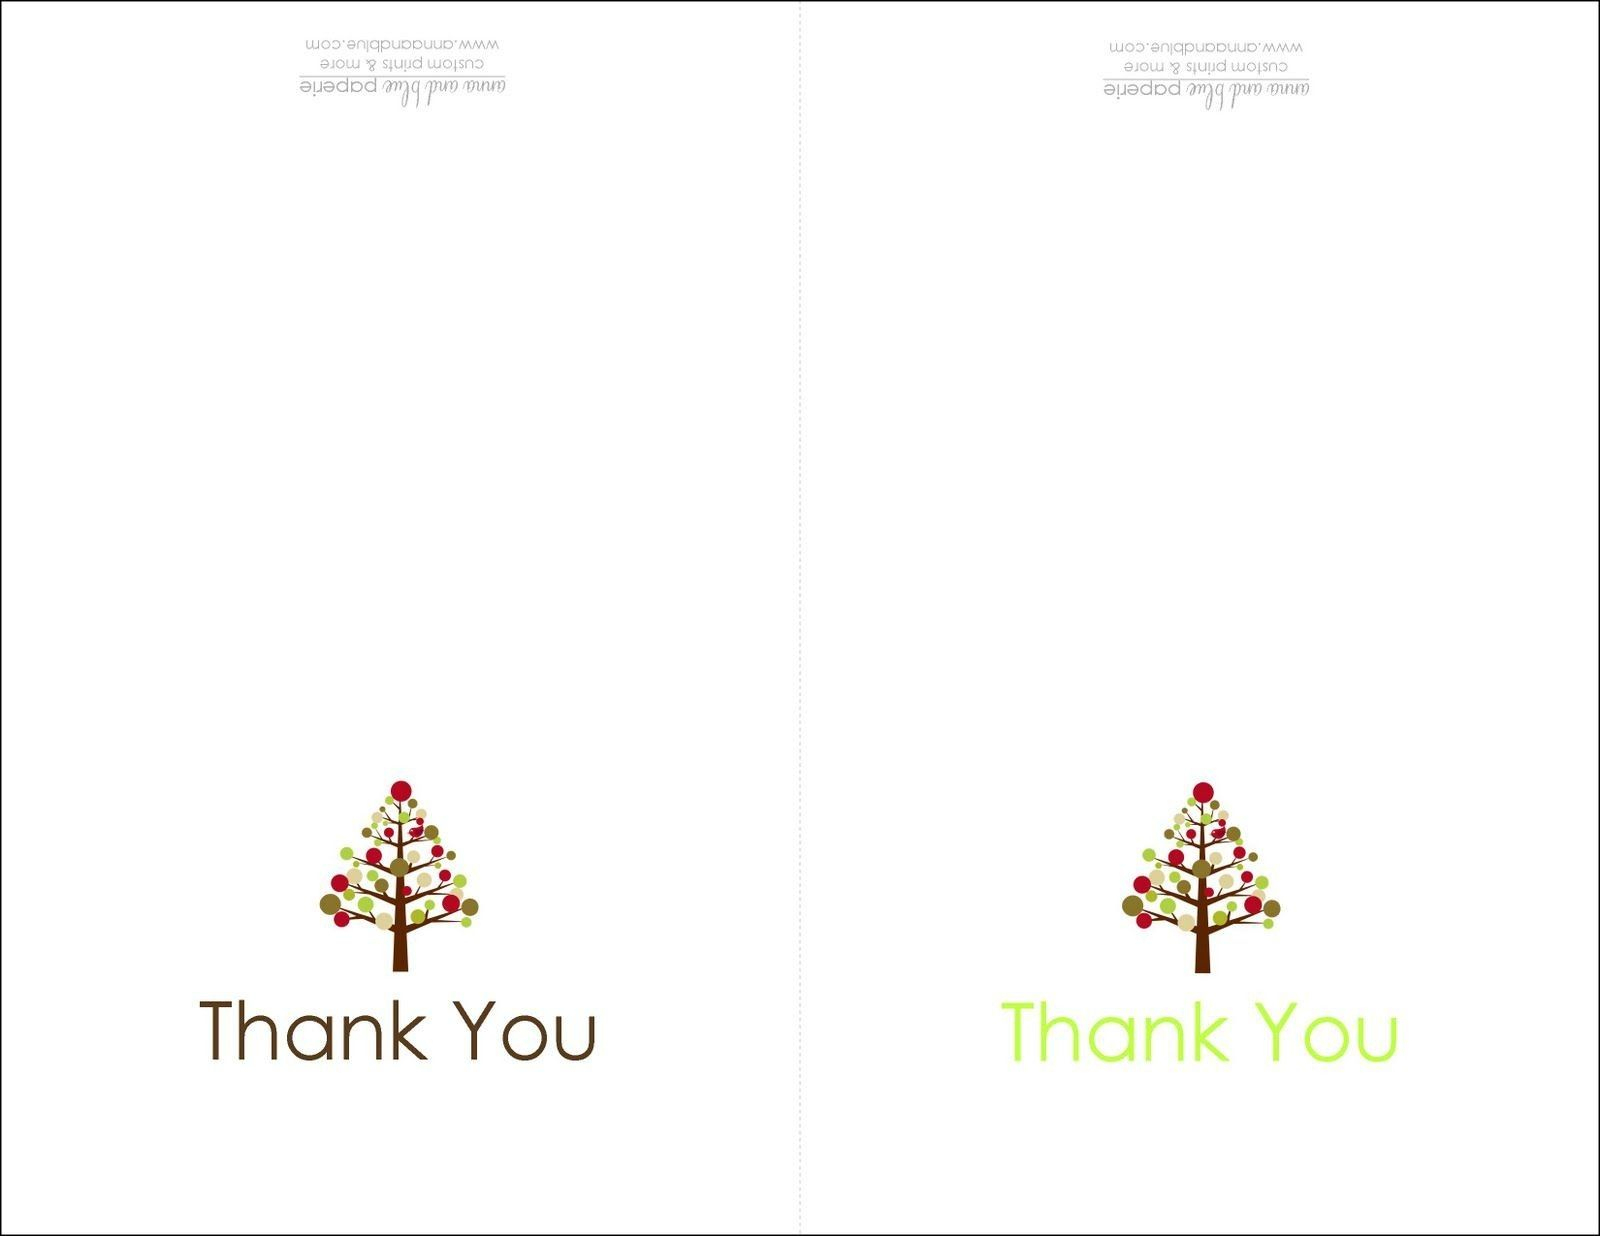 Thank You Card Design Template New Thank You Card Printable | Cards - Thank You Card Free Printable Template